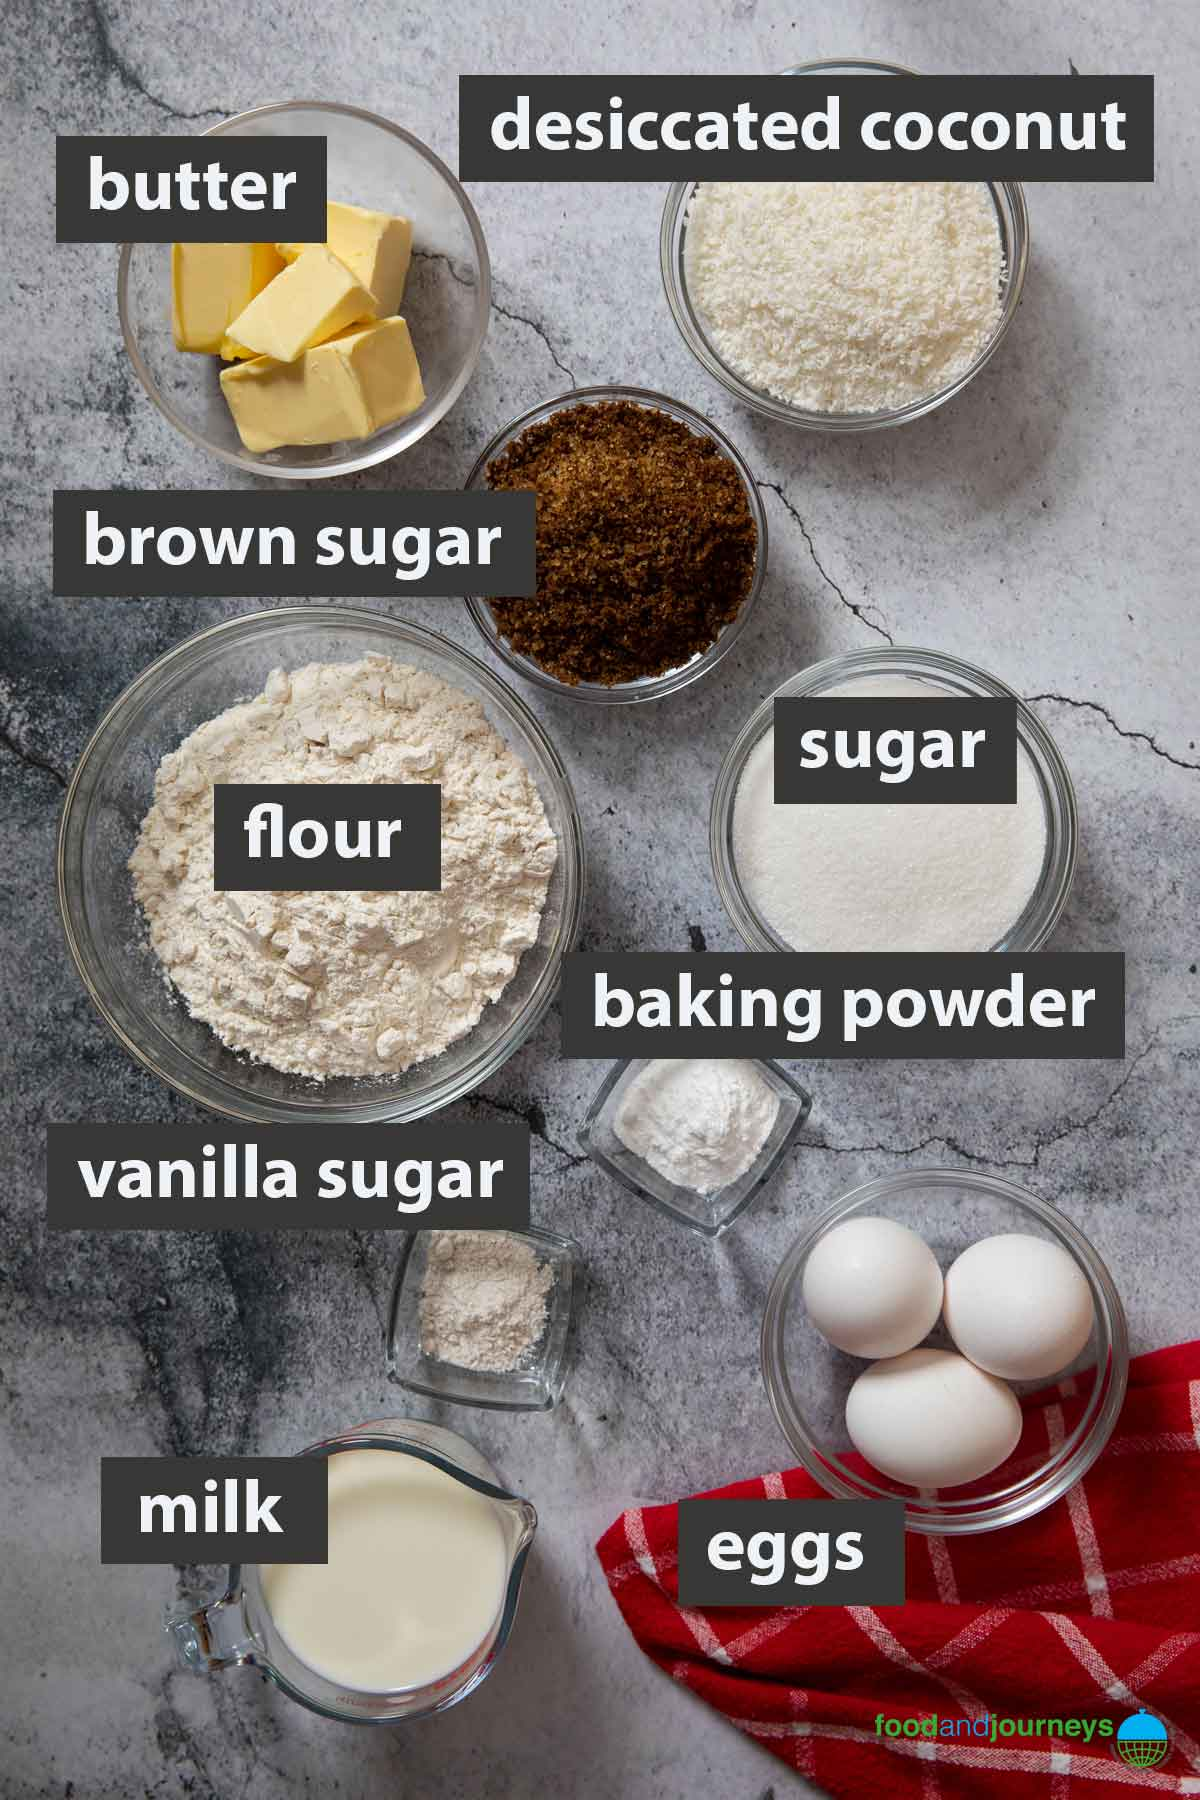 An image showing all the ingredients you need to make Danish Dreamcake.